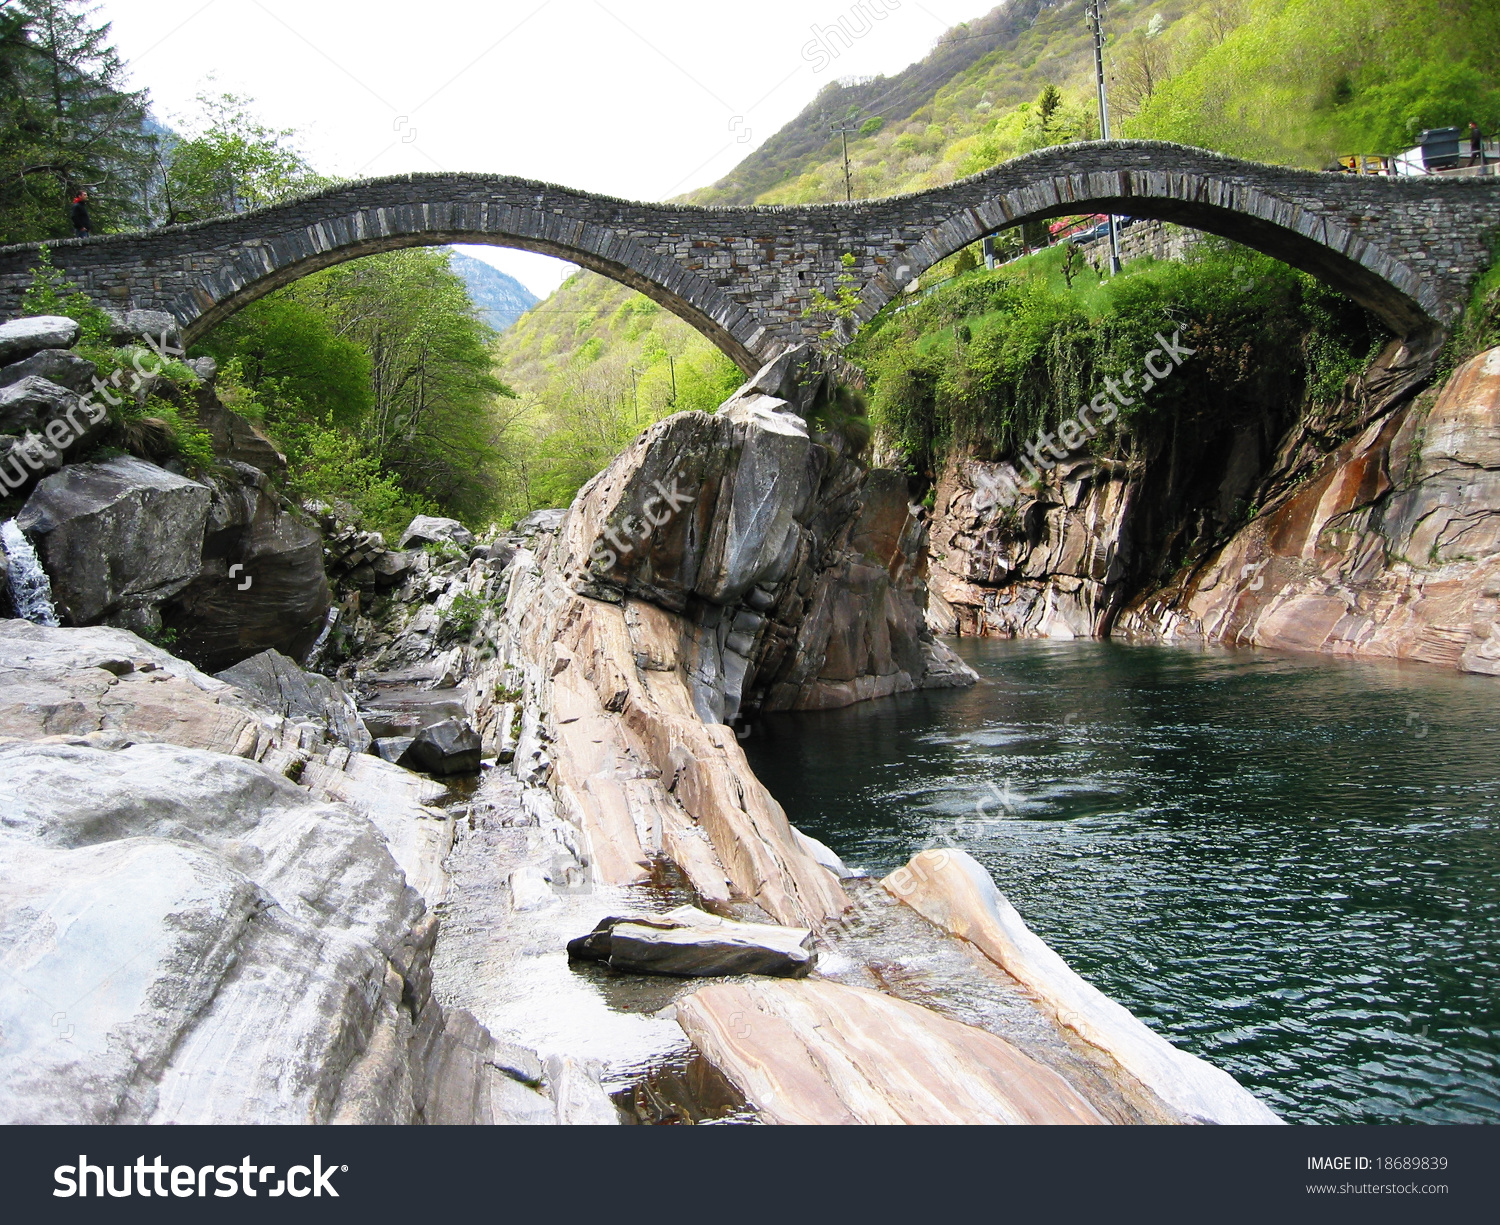 Famous Double Arch Bridge In Verzasca Valley, Southern Switzerland.